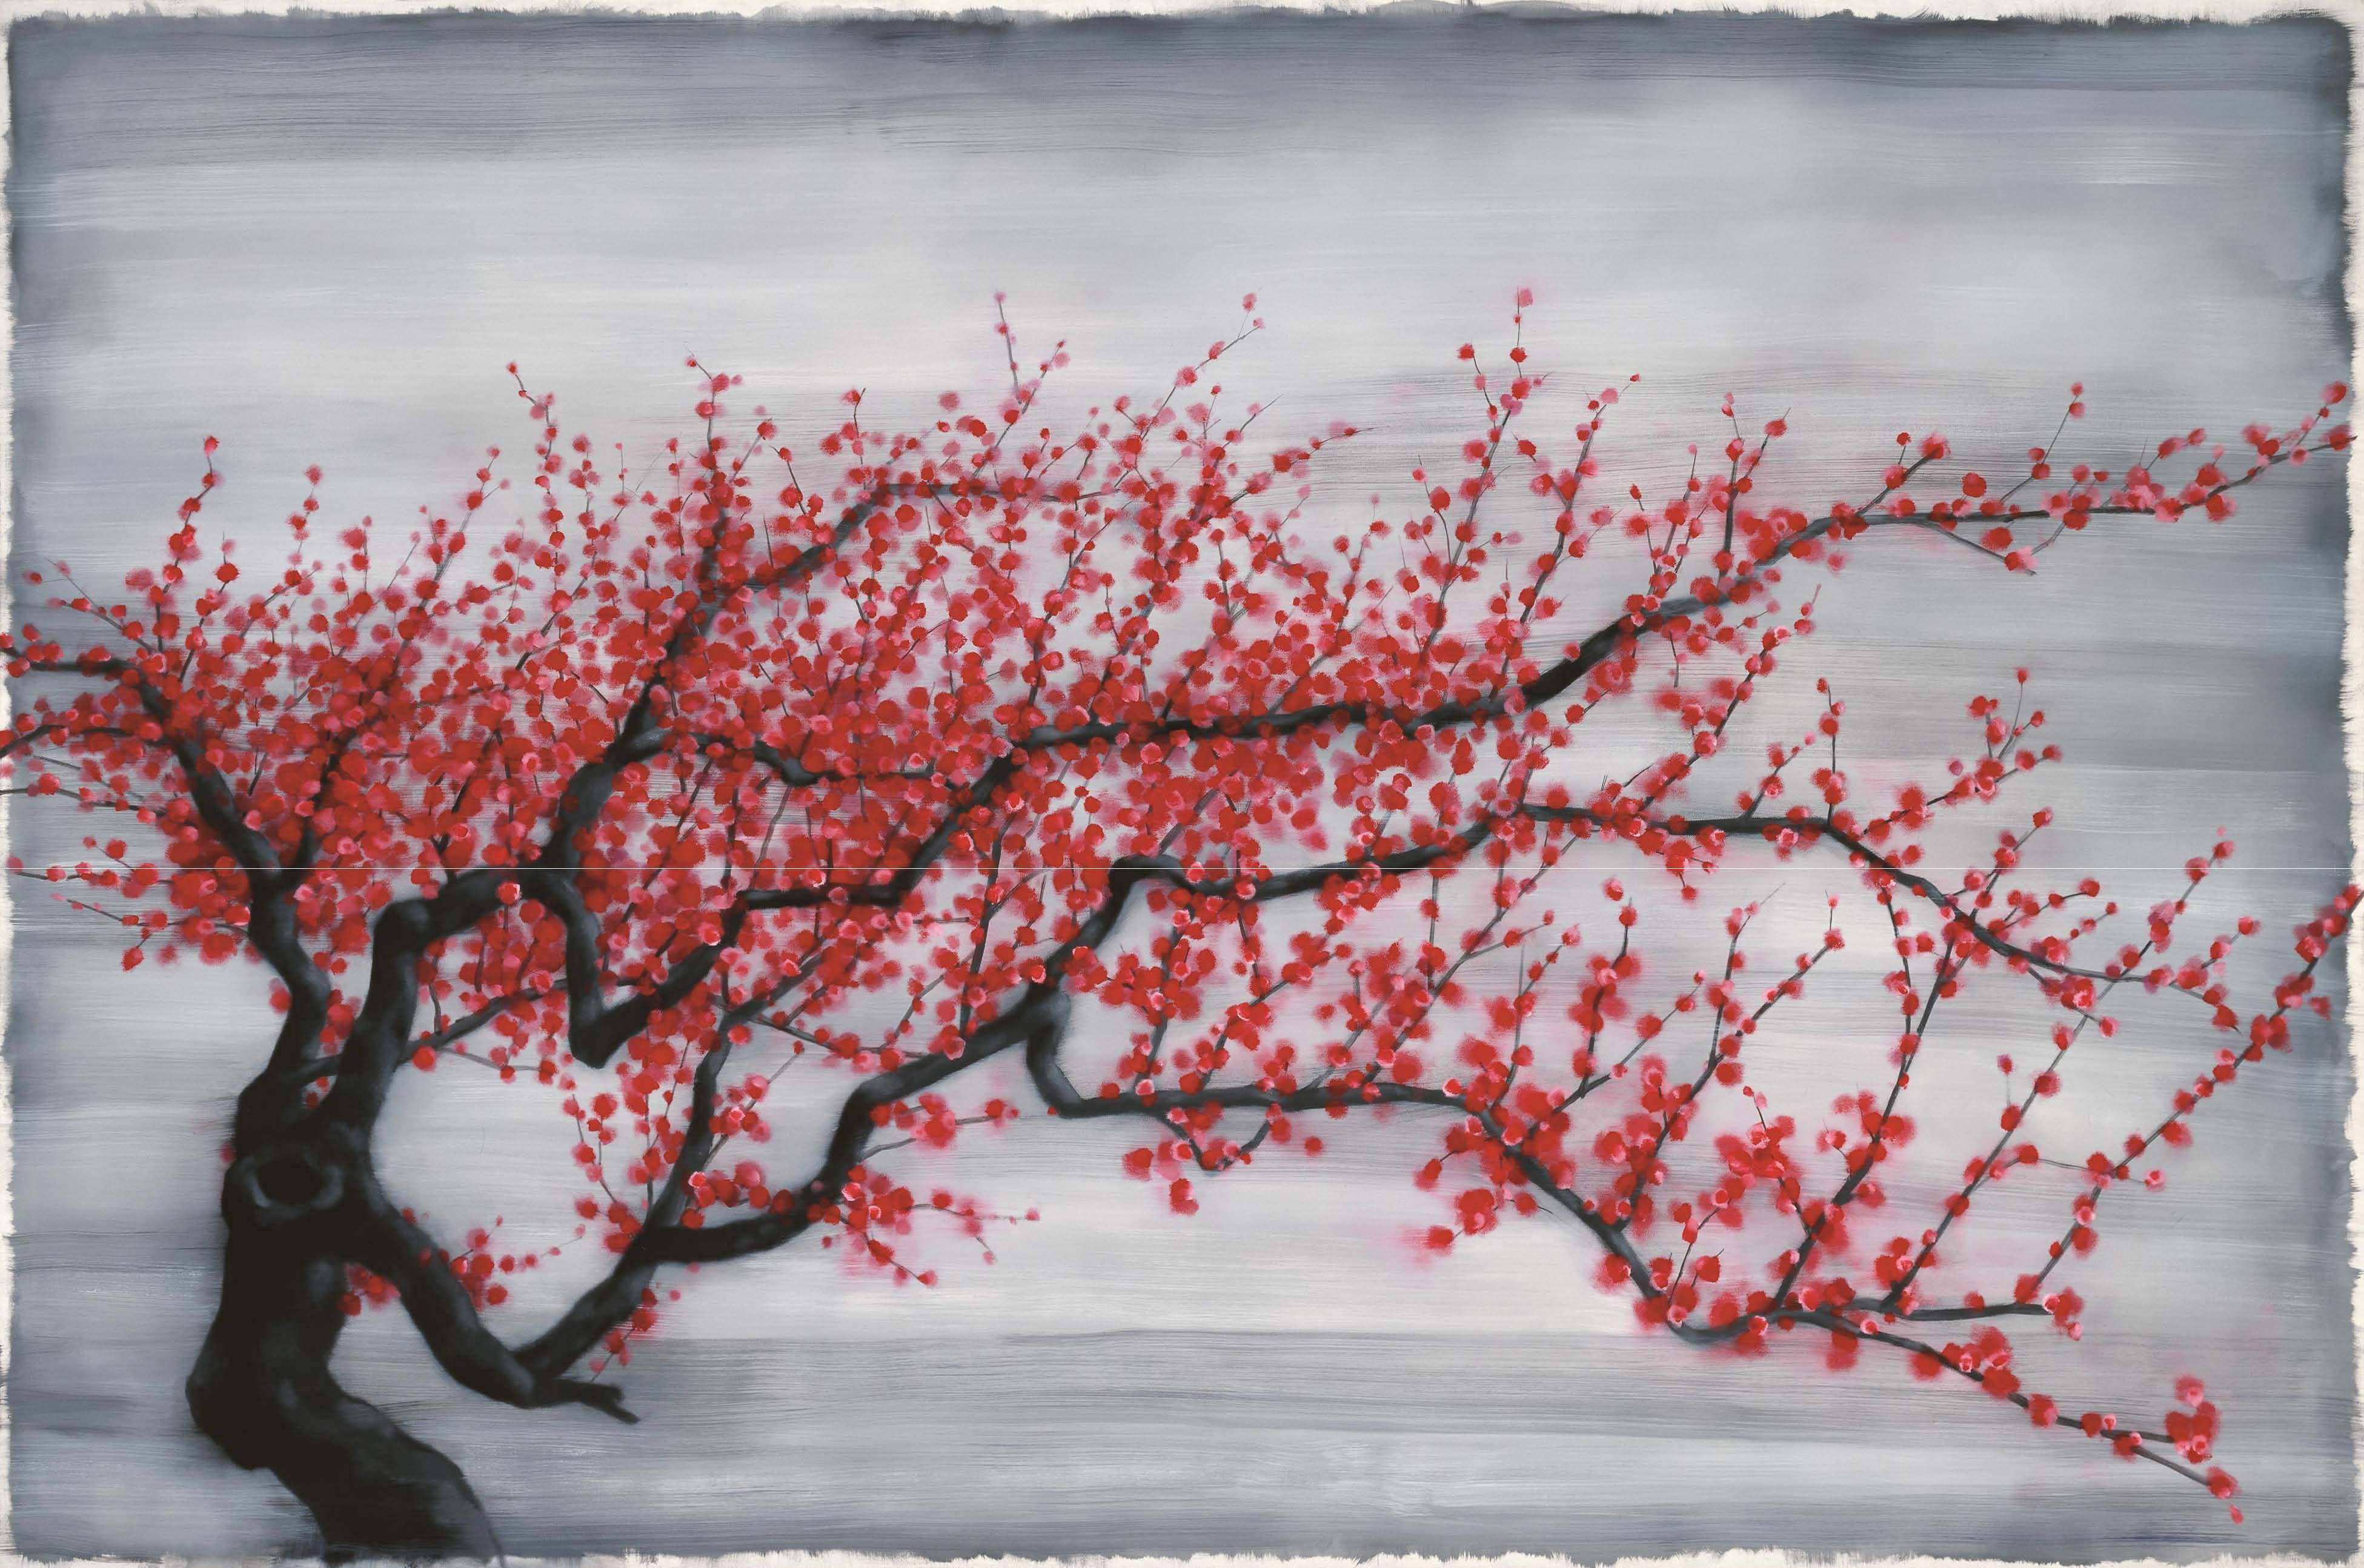 Zhang Xiaogang 张晓刚 | Red Plum Tree | oil on canvas | 200 x 300 cm | 2011